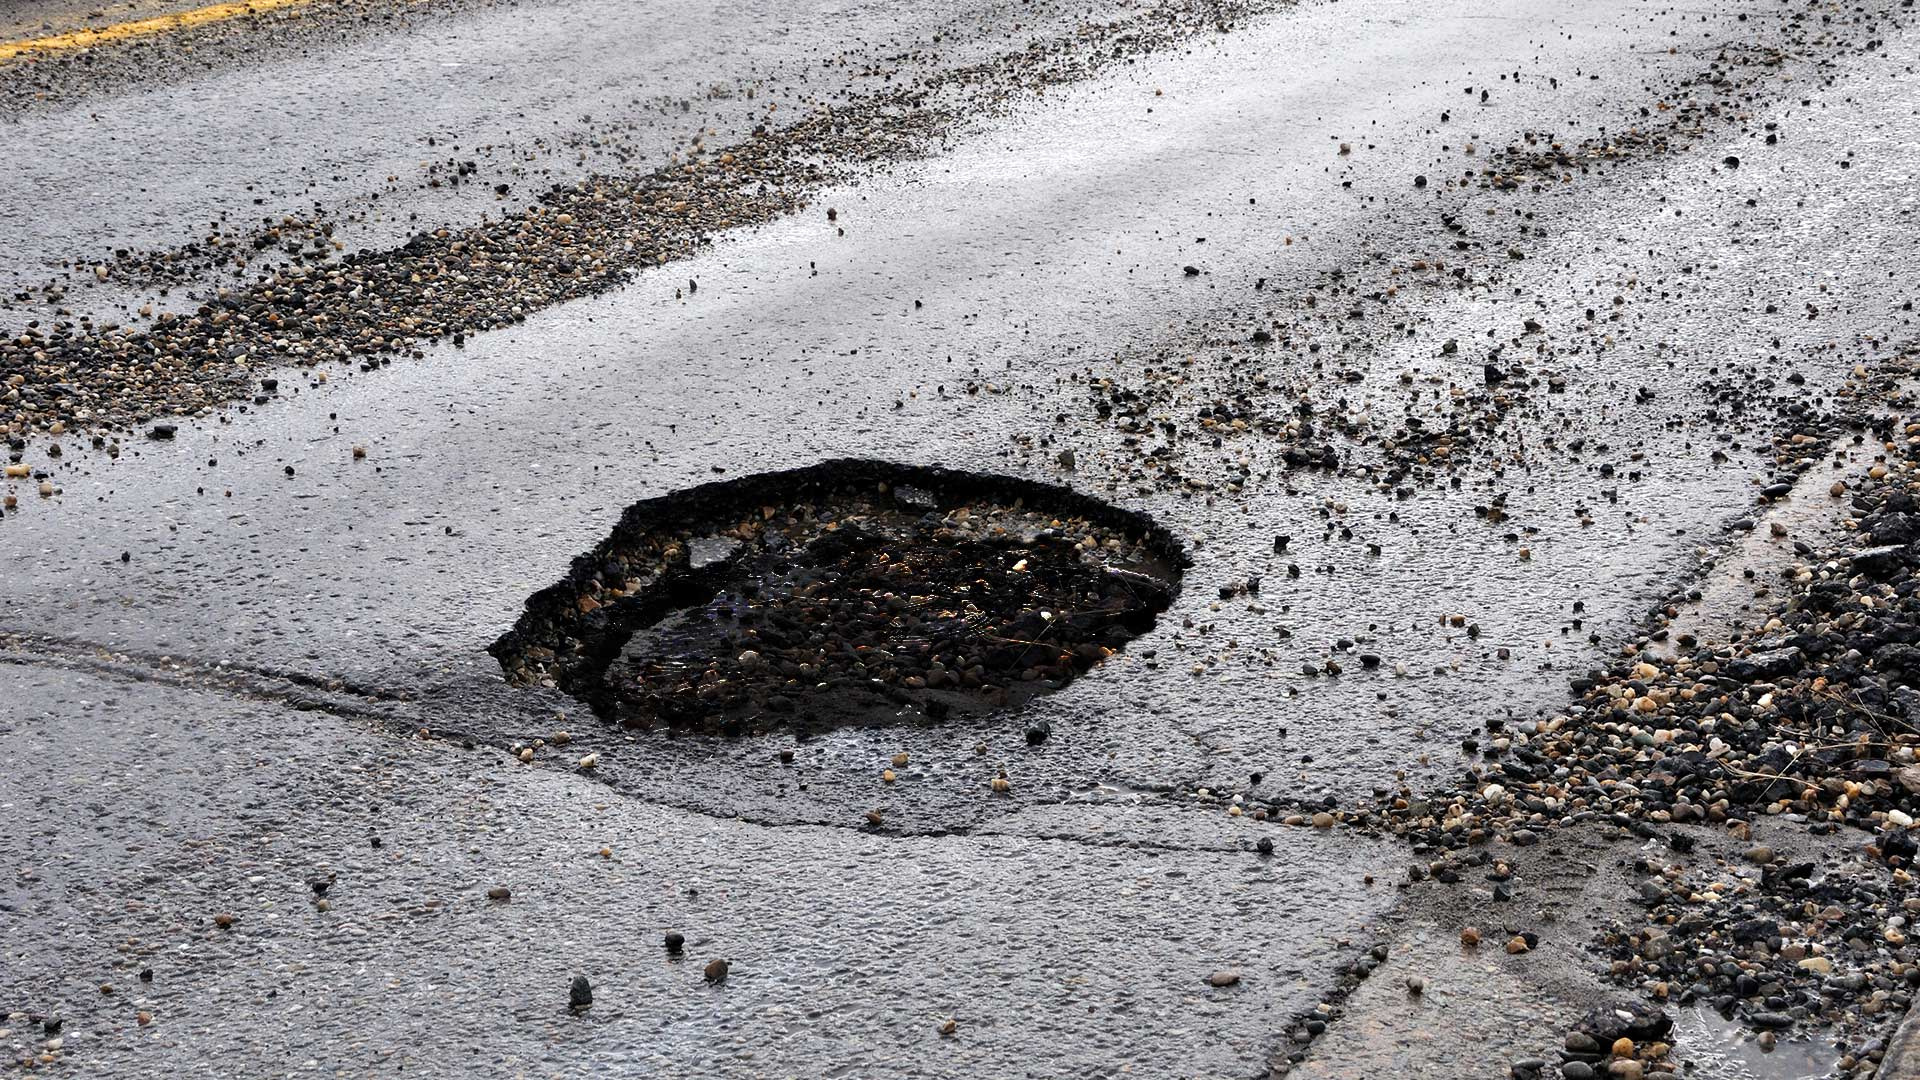 Nicollet-Avenue-Pothole-Discovered-to-Be-Direct-Route-to-Earths-Core.jpg